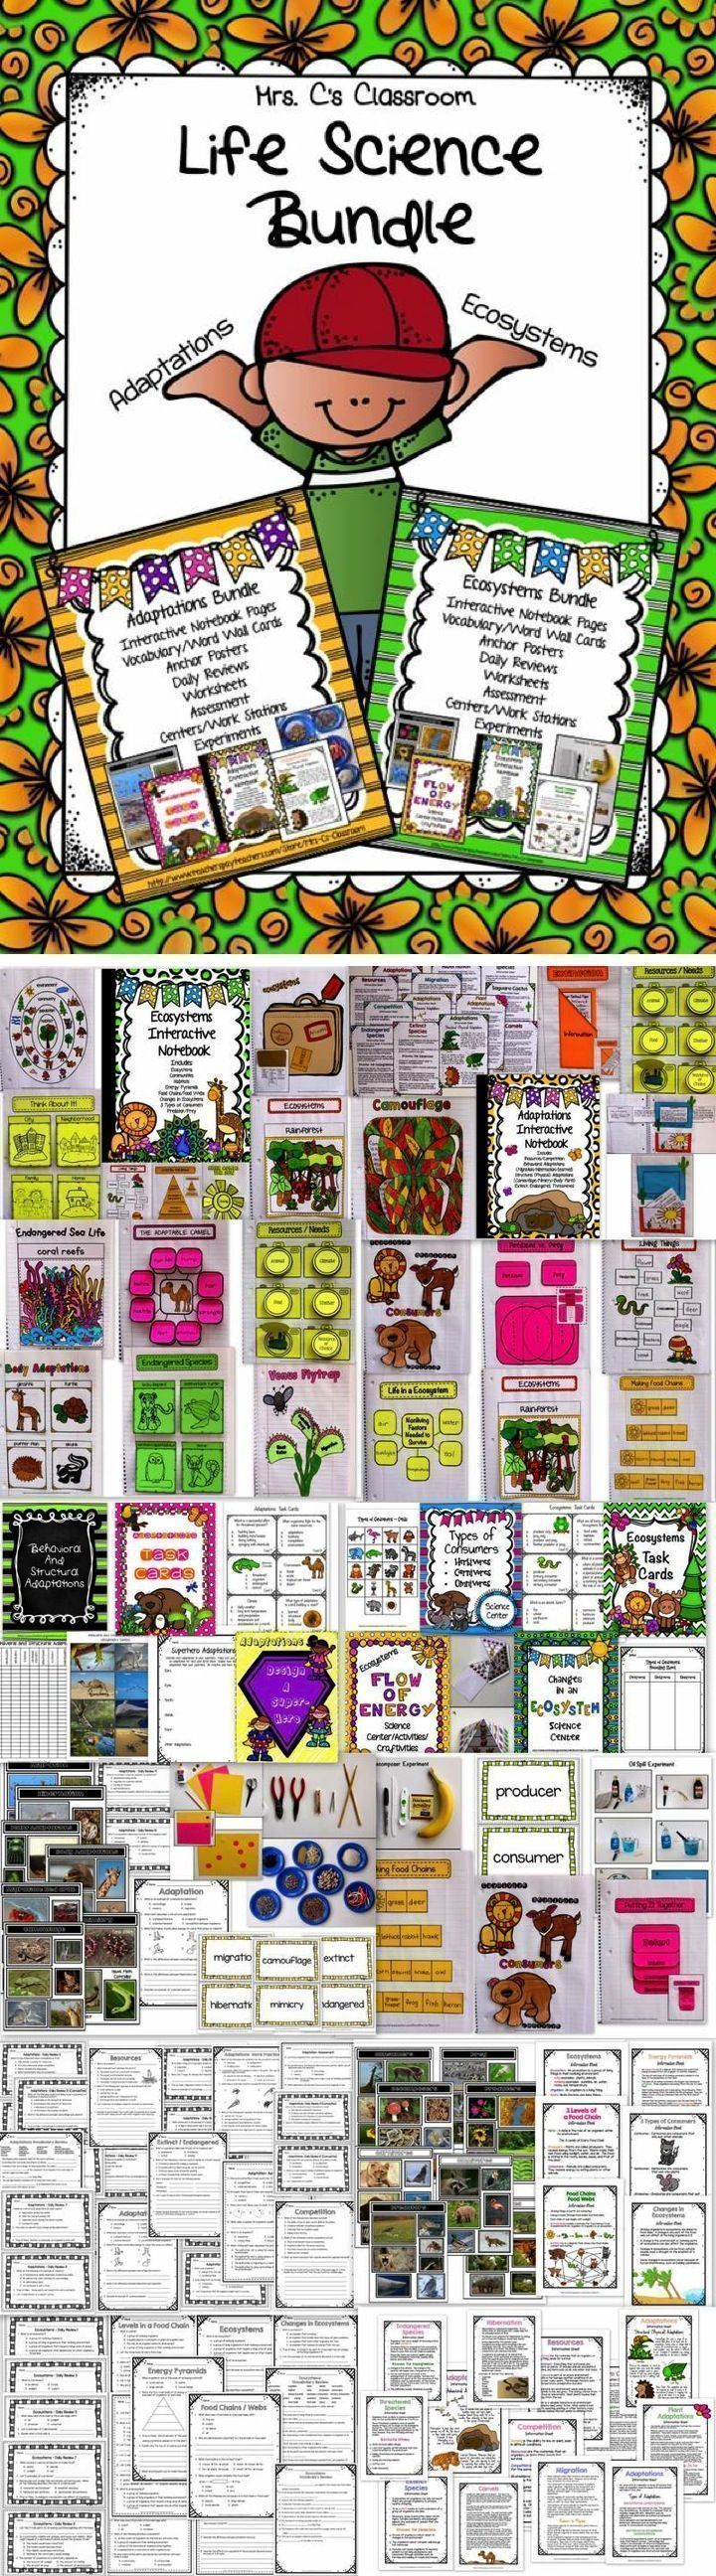 LIFE SCIENCE BUNDLE - Ecosystems/Adaptations - Interactive notebooks ++++MORE